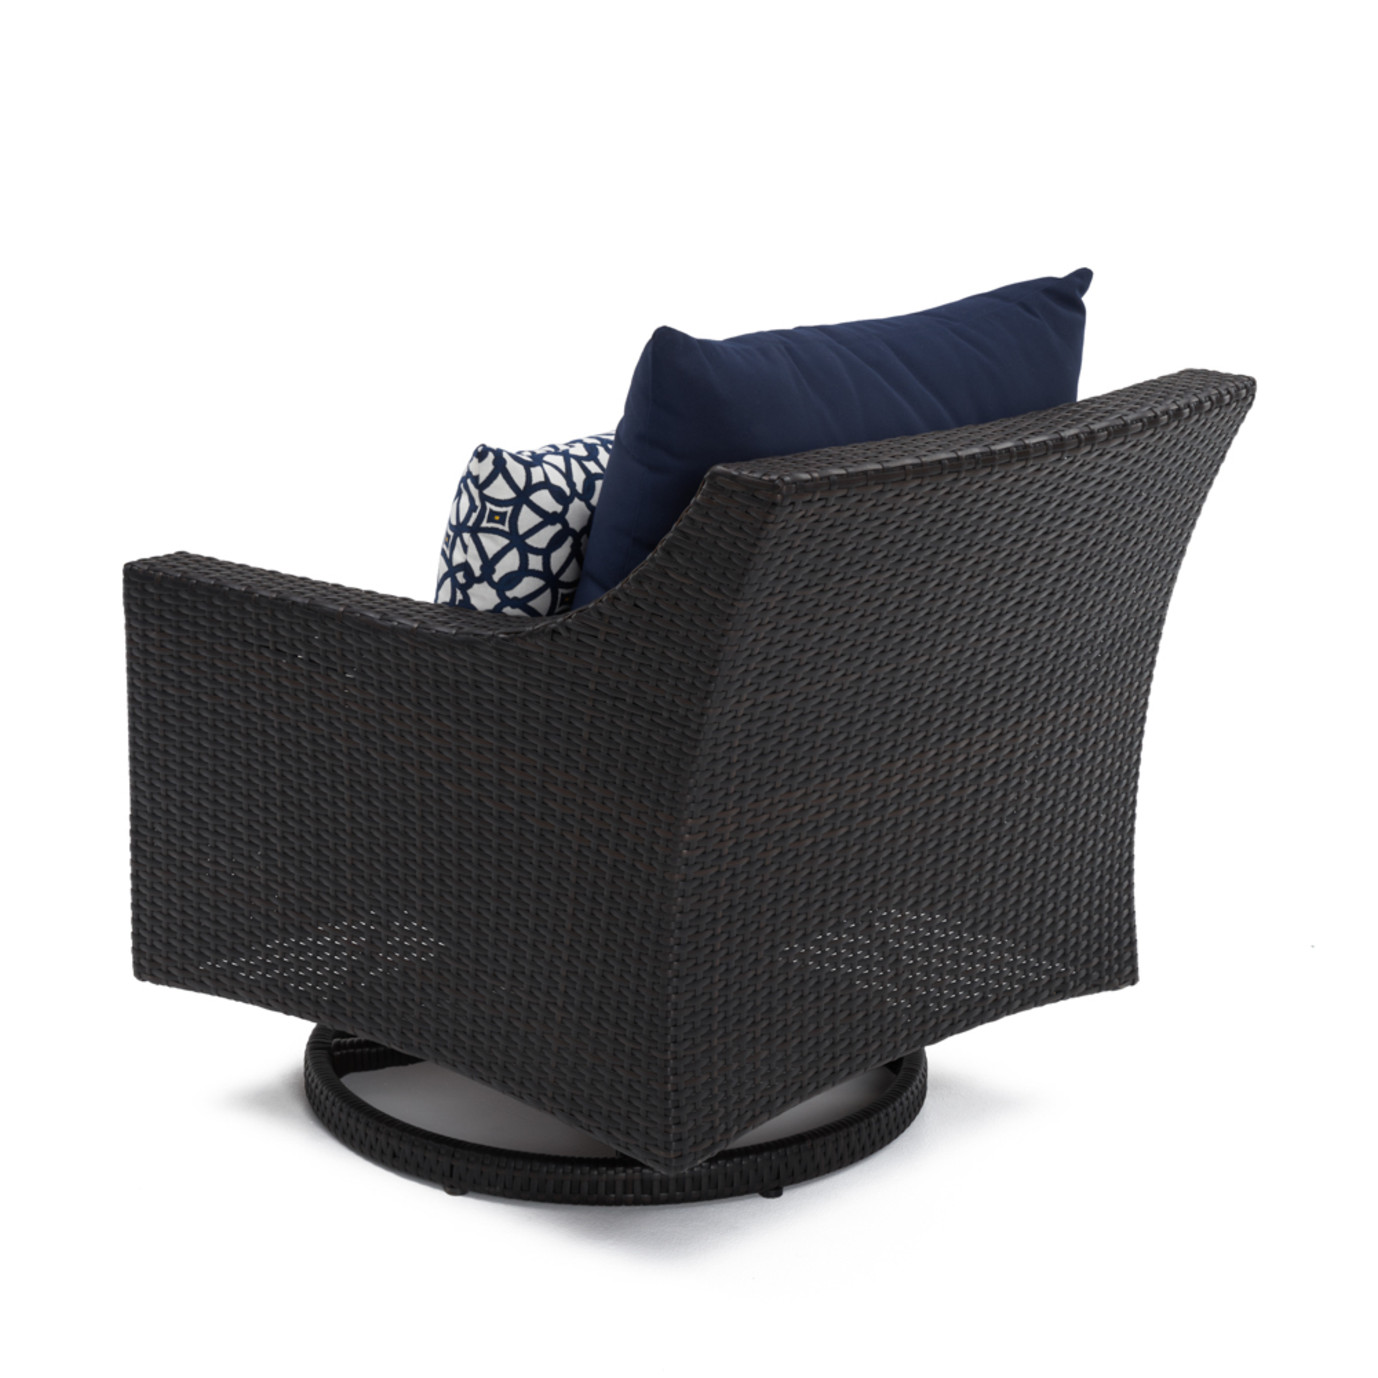 Deco™ Motion Club Chairs - Navy Blue